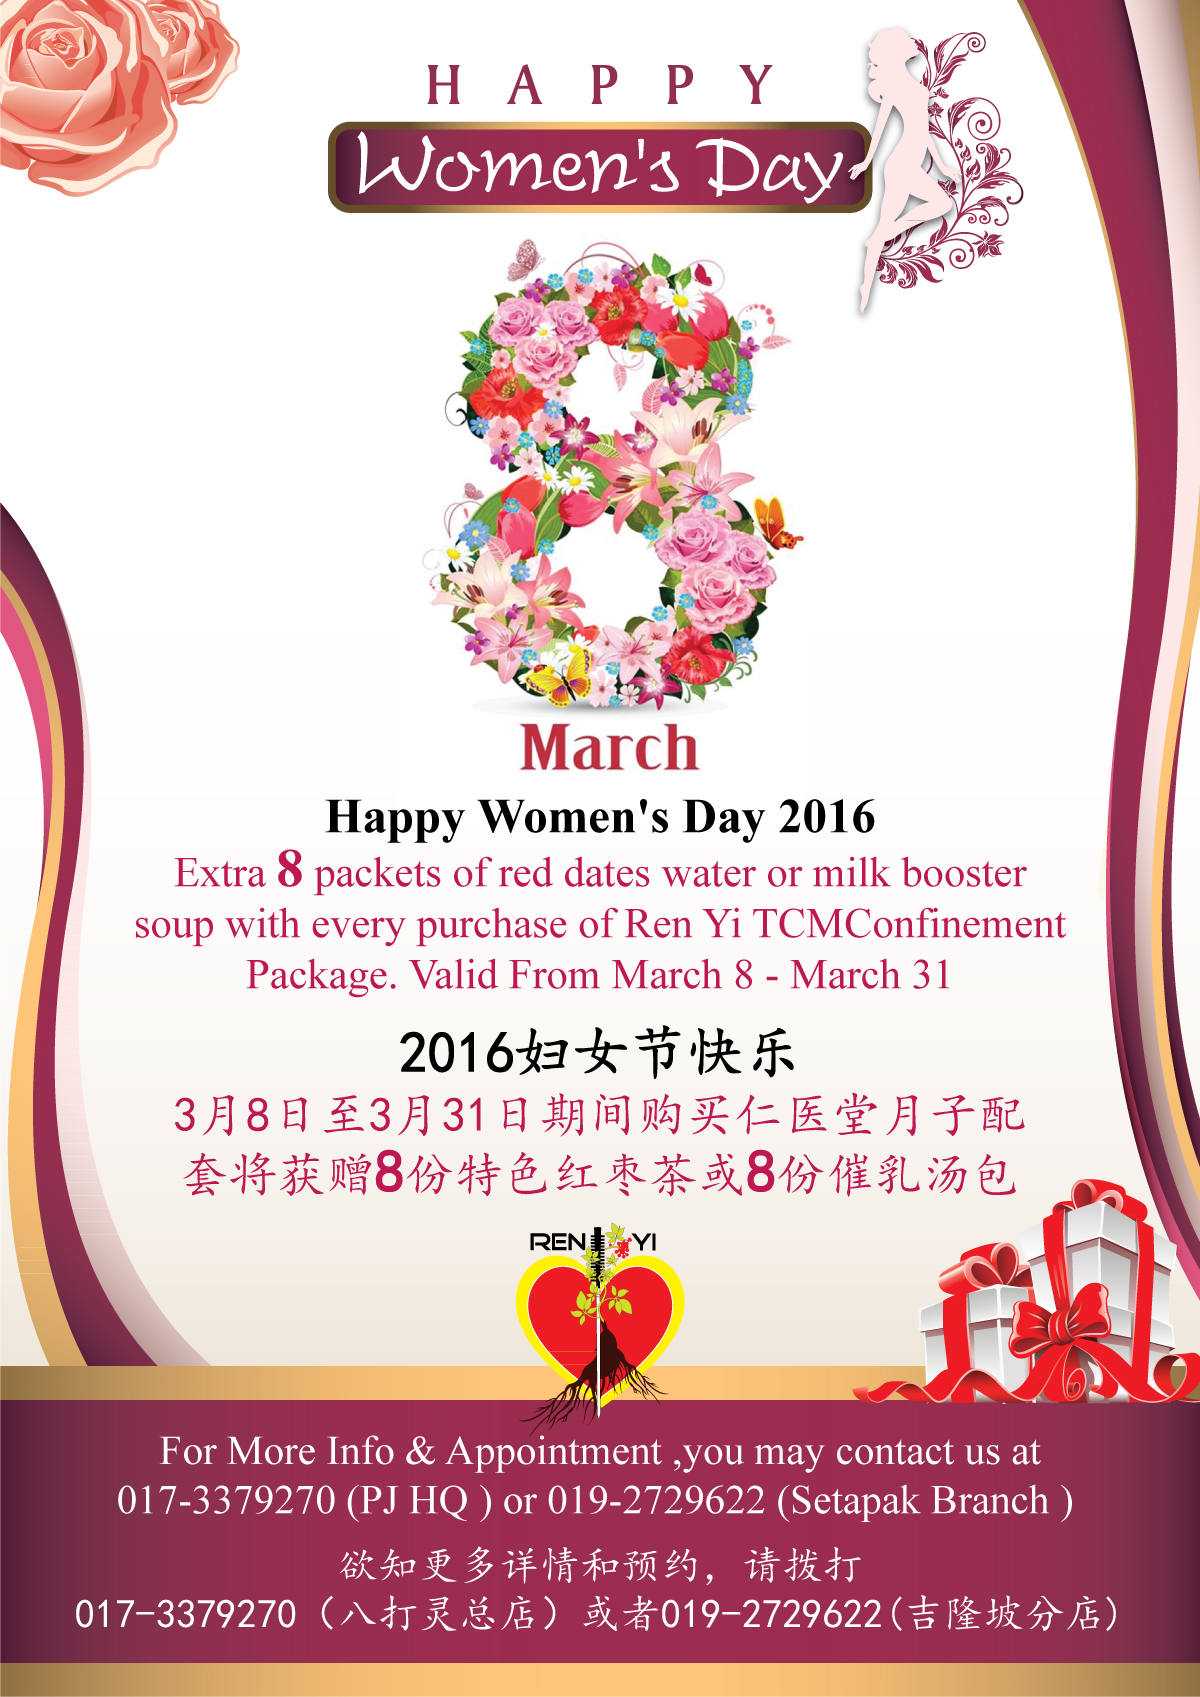 Renyi-Women's-Day-4-2-16